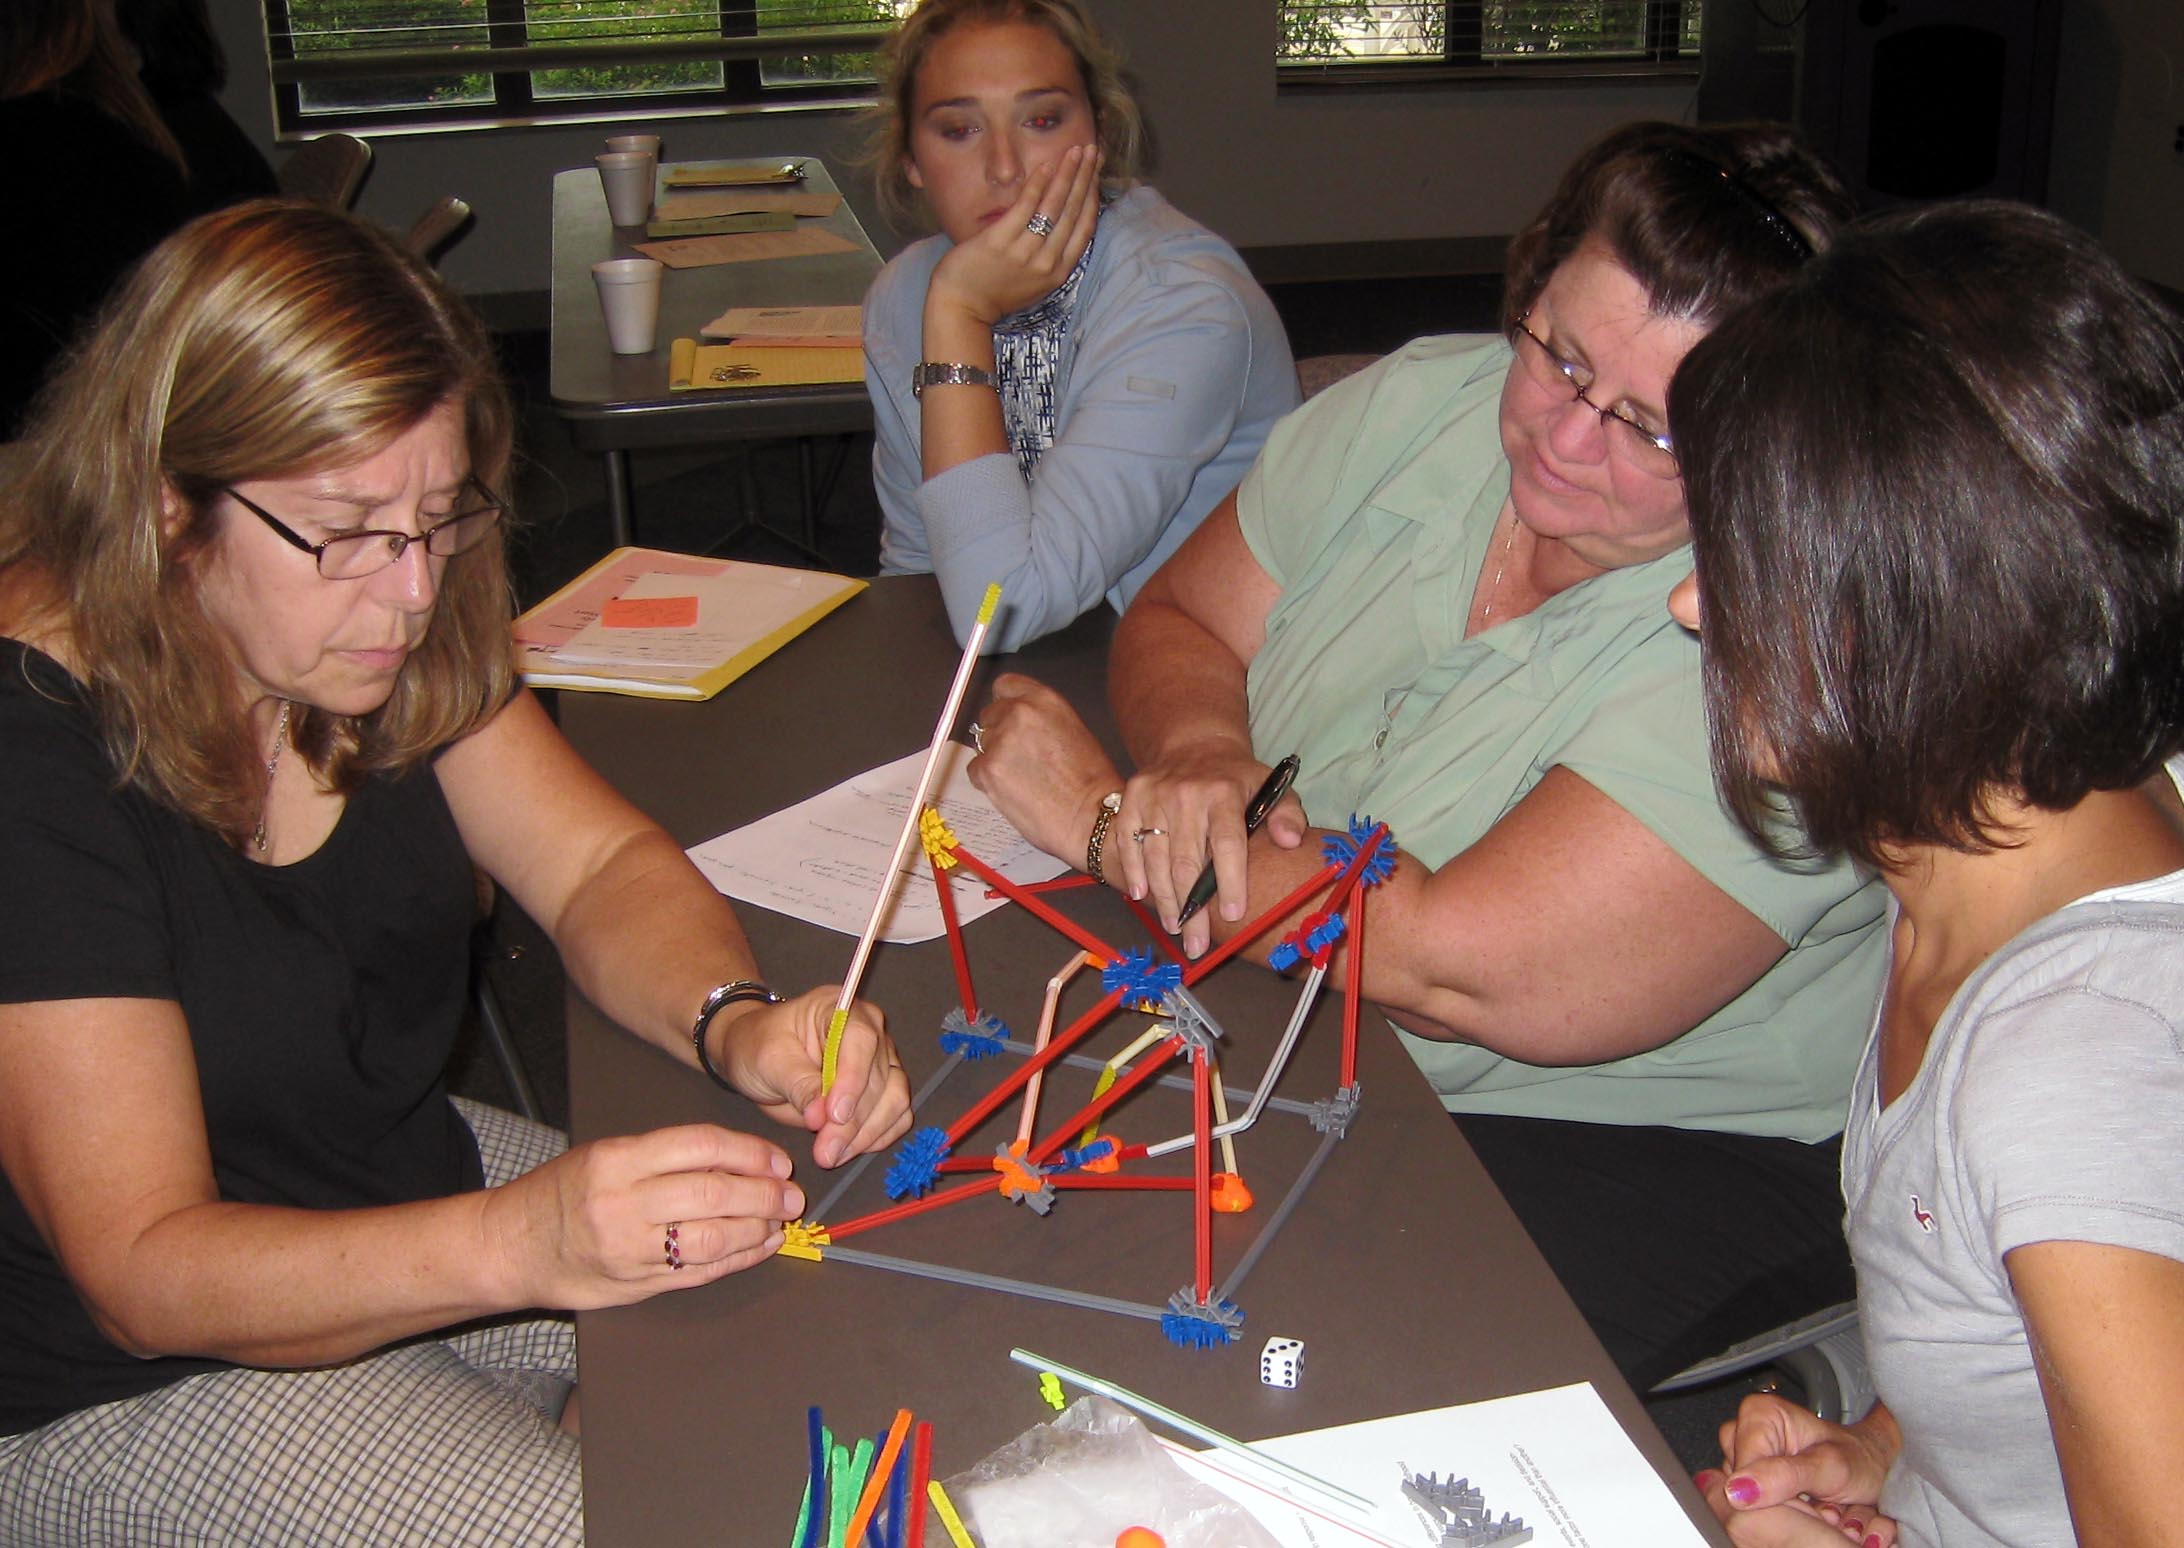 """Teachers play an early concept prototype of """"Brain Architecture"""" game at an Early Head Start workshop taught by Prof. Judy Cameron in Pennsylvania, September, 2010."""